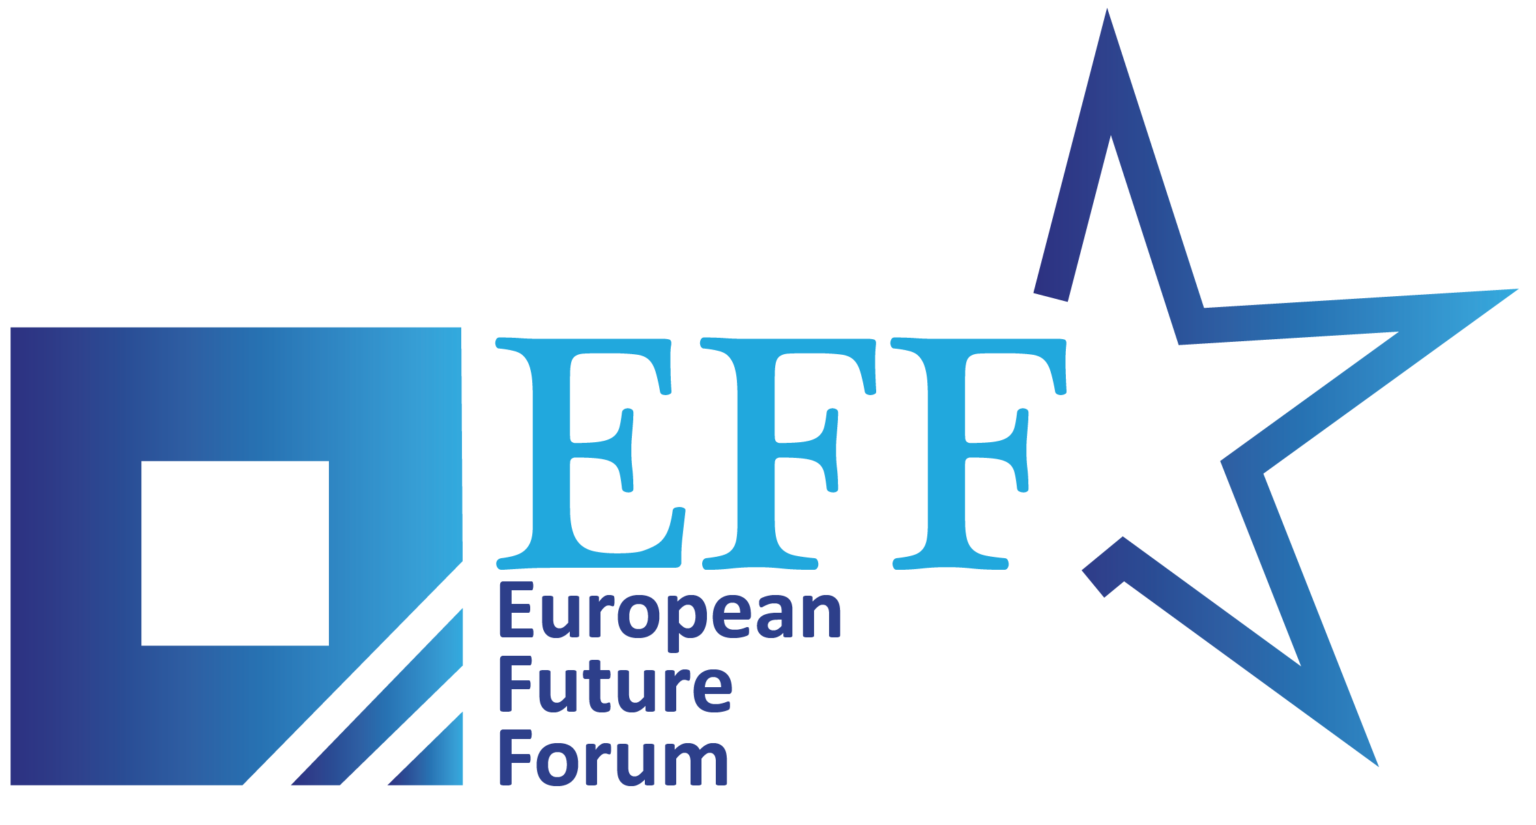 European Future Forum